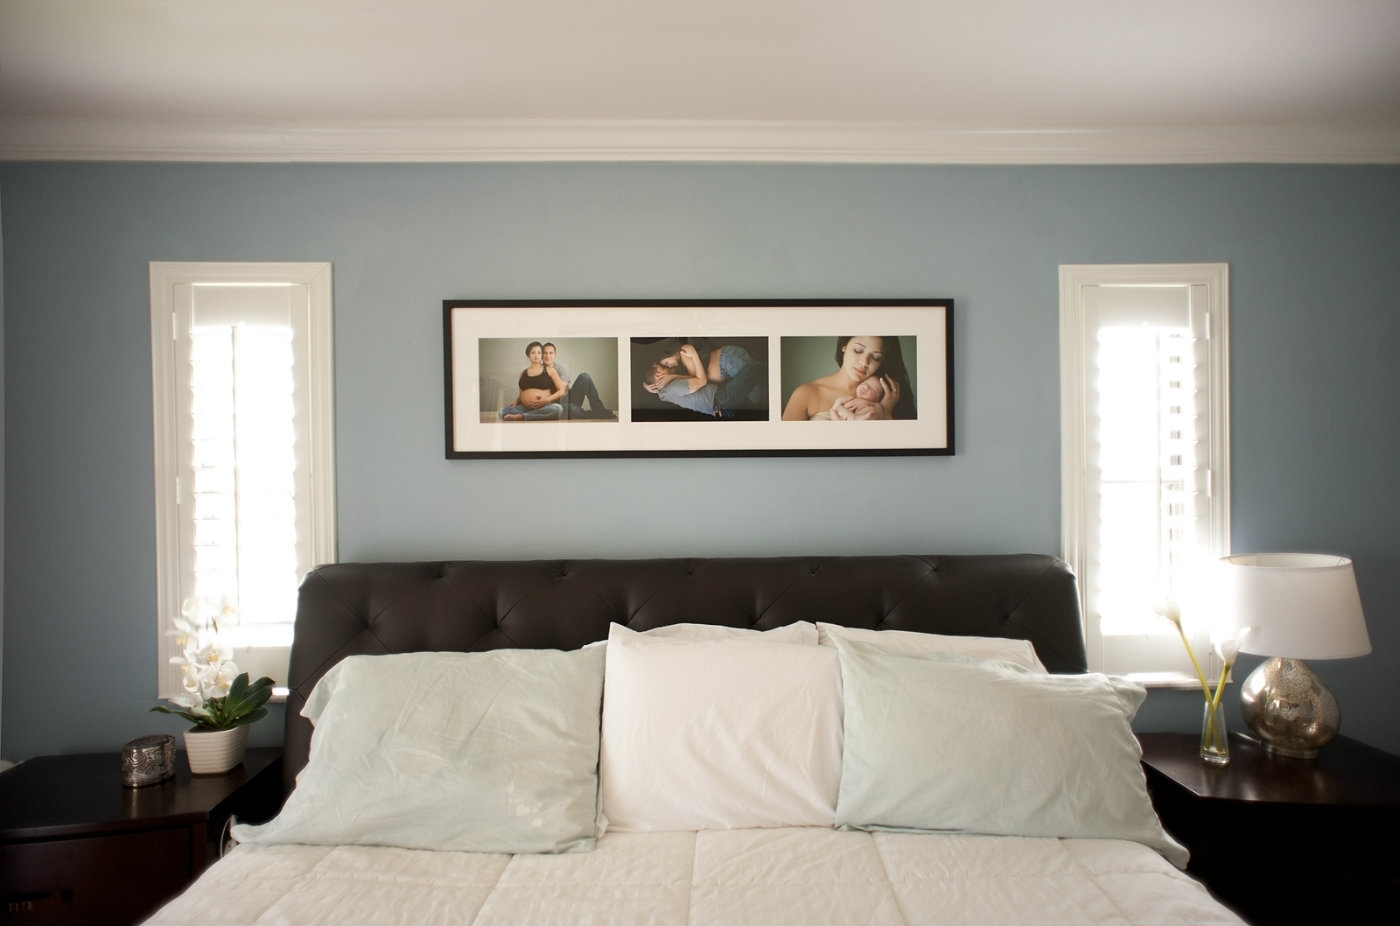 51 Wall Art Bedroom, Art Wall Decor Decorating Ideas Gallery In With Newest Framed Art Prints For Bedroom (View 12 of 15)